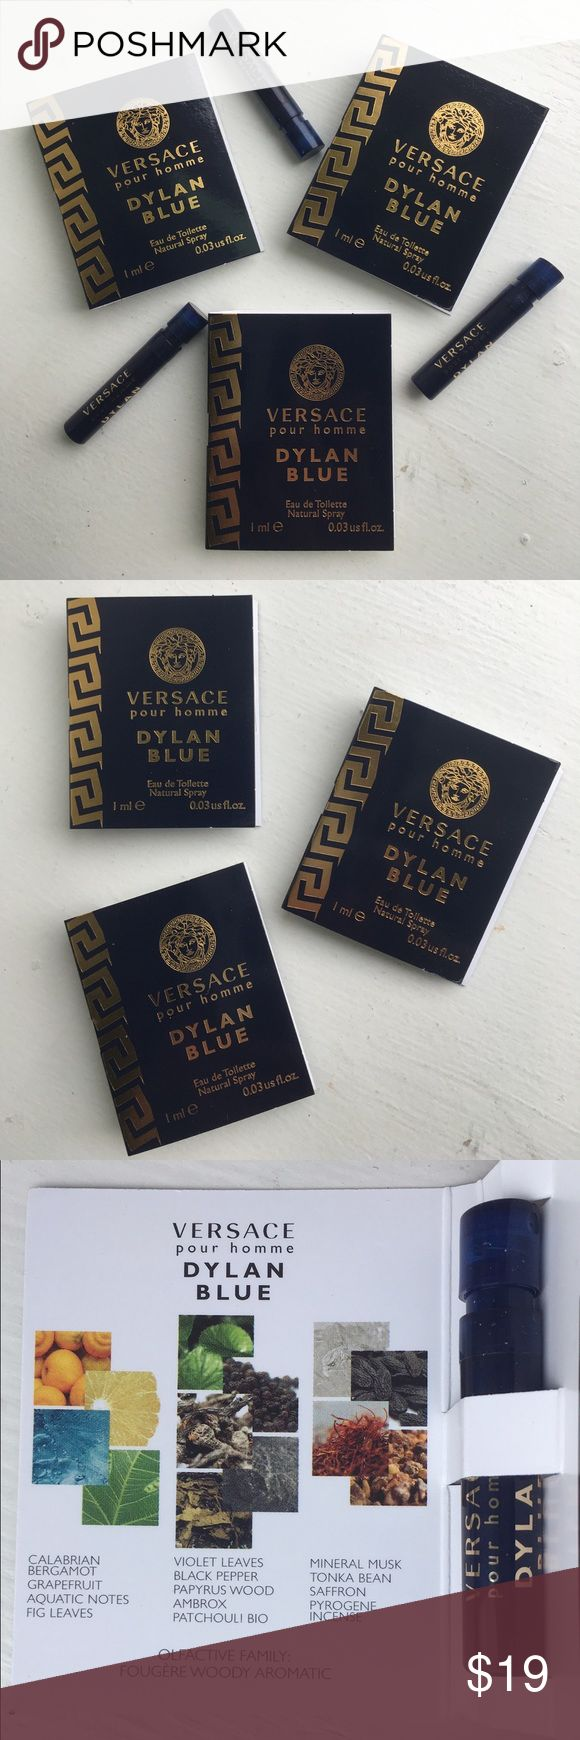 🆕🎆NEW🎆Versace Pour Homme Dylan Blue 3Pc Travel 🆕🎆NEW🎆Versace Pour Homme Dylan Blue 3Pc Travel Set. All Have Atomizers All Have 0.03oz. BRAND NEW! UNTOUCHED! 🚫Trades 🚫Price Firm Versace Other